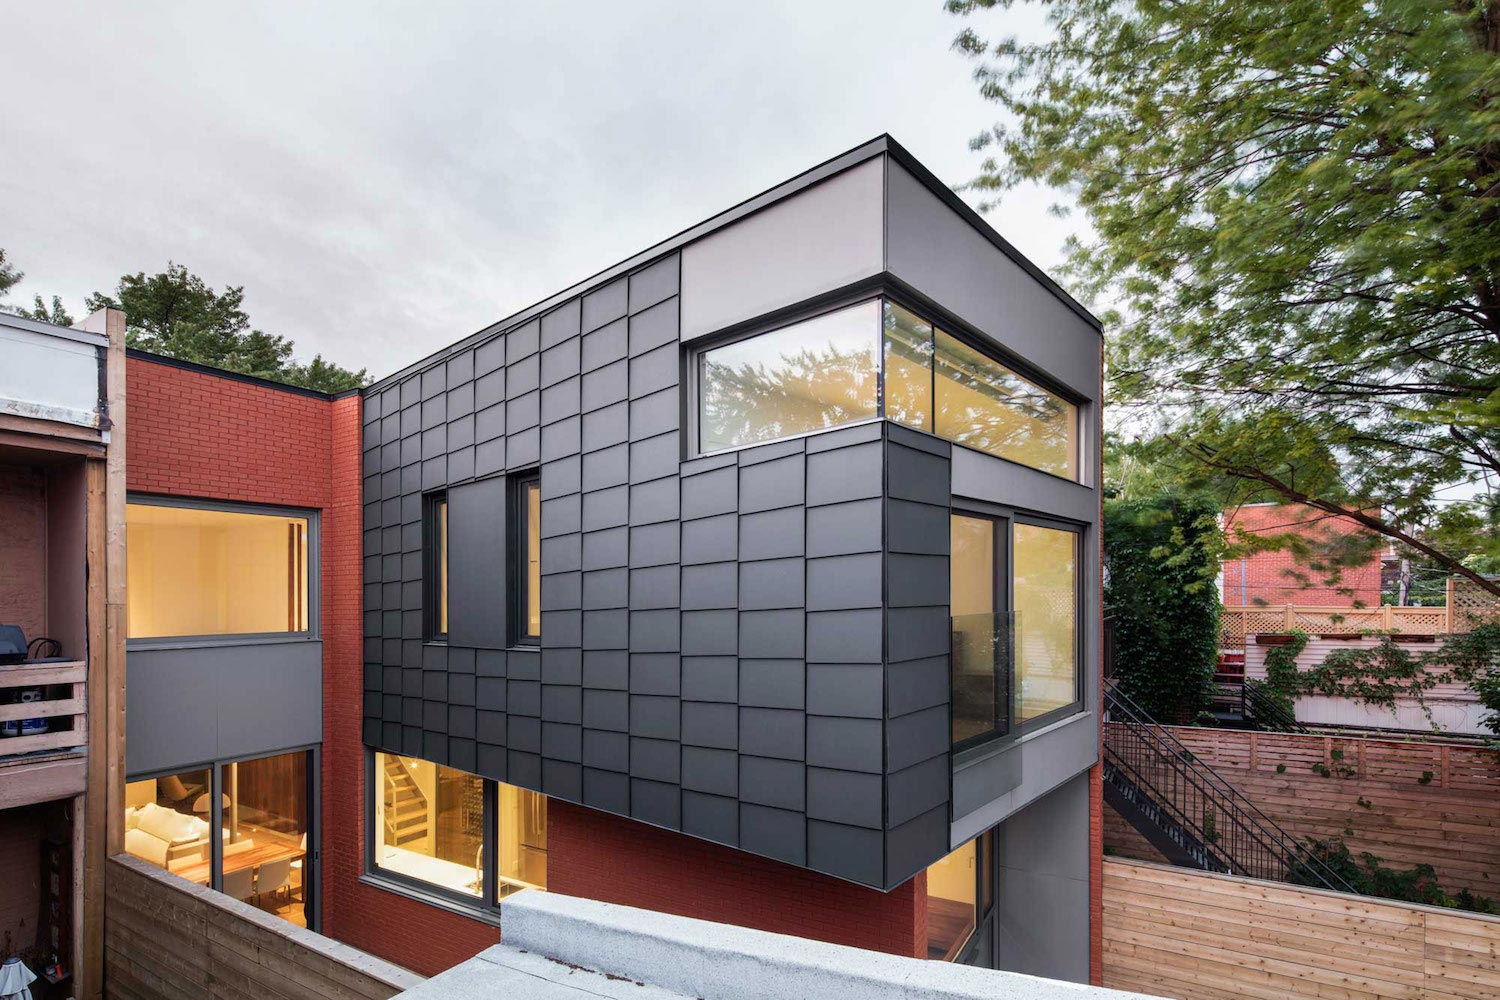 conversion of a 20th century duplex into a single family dwelling